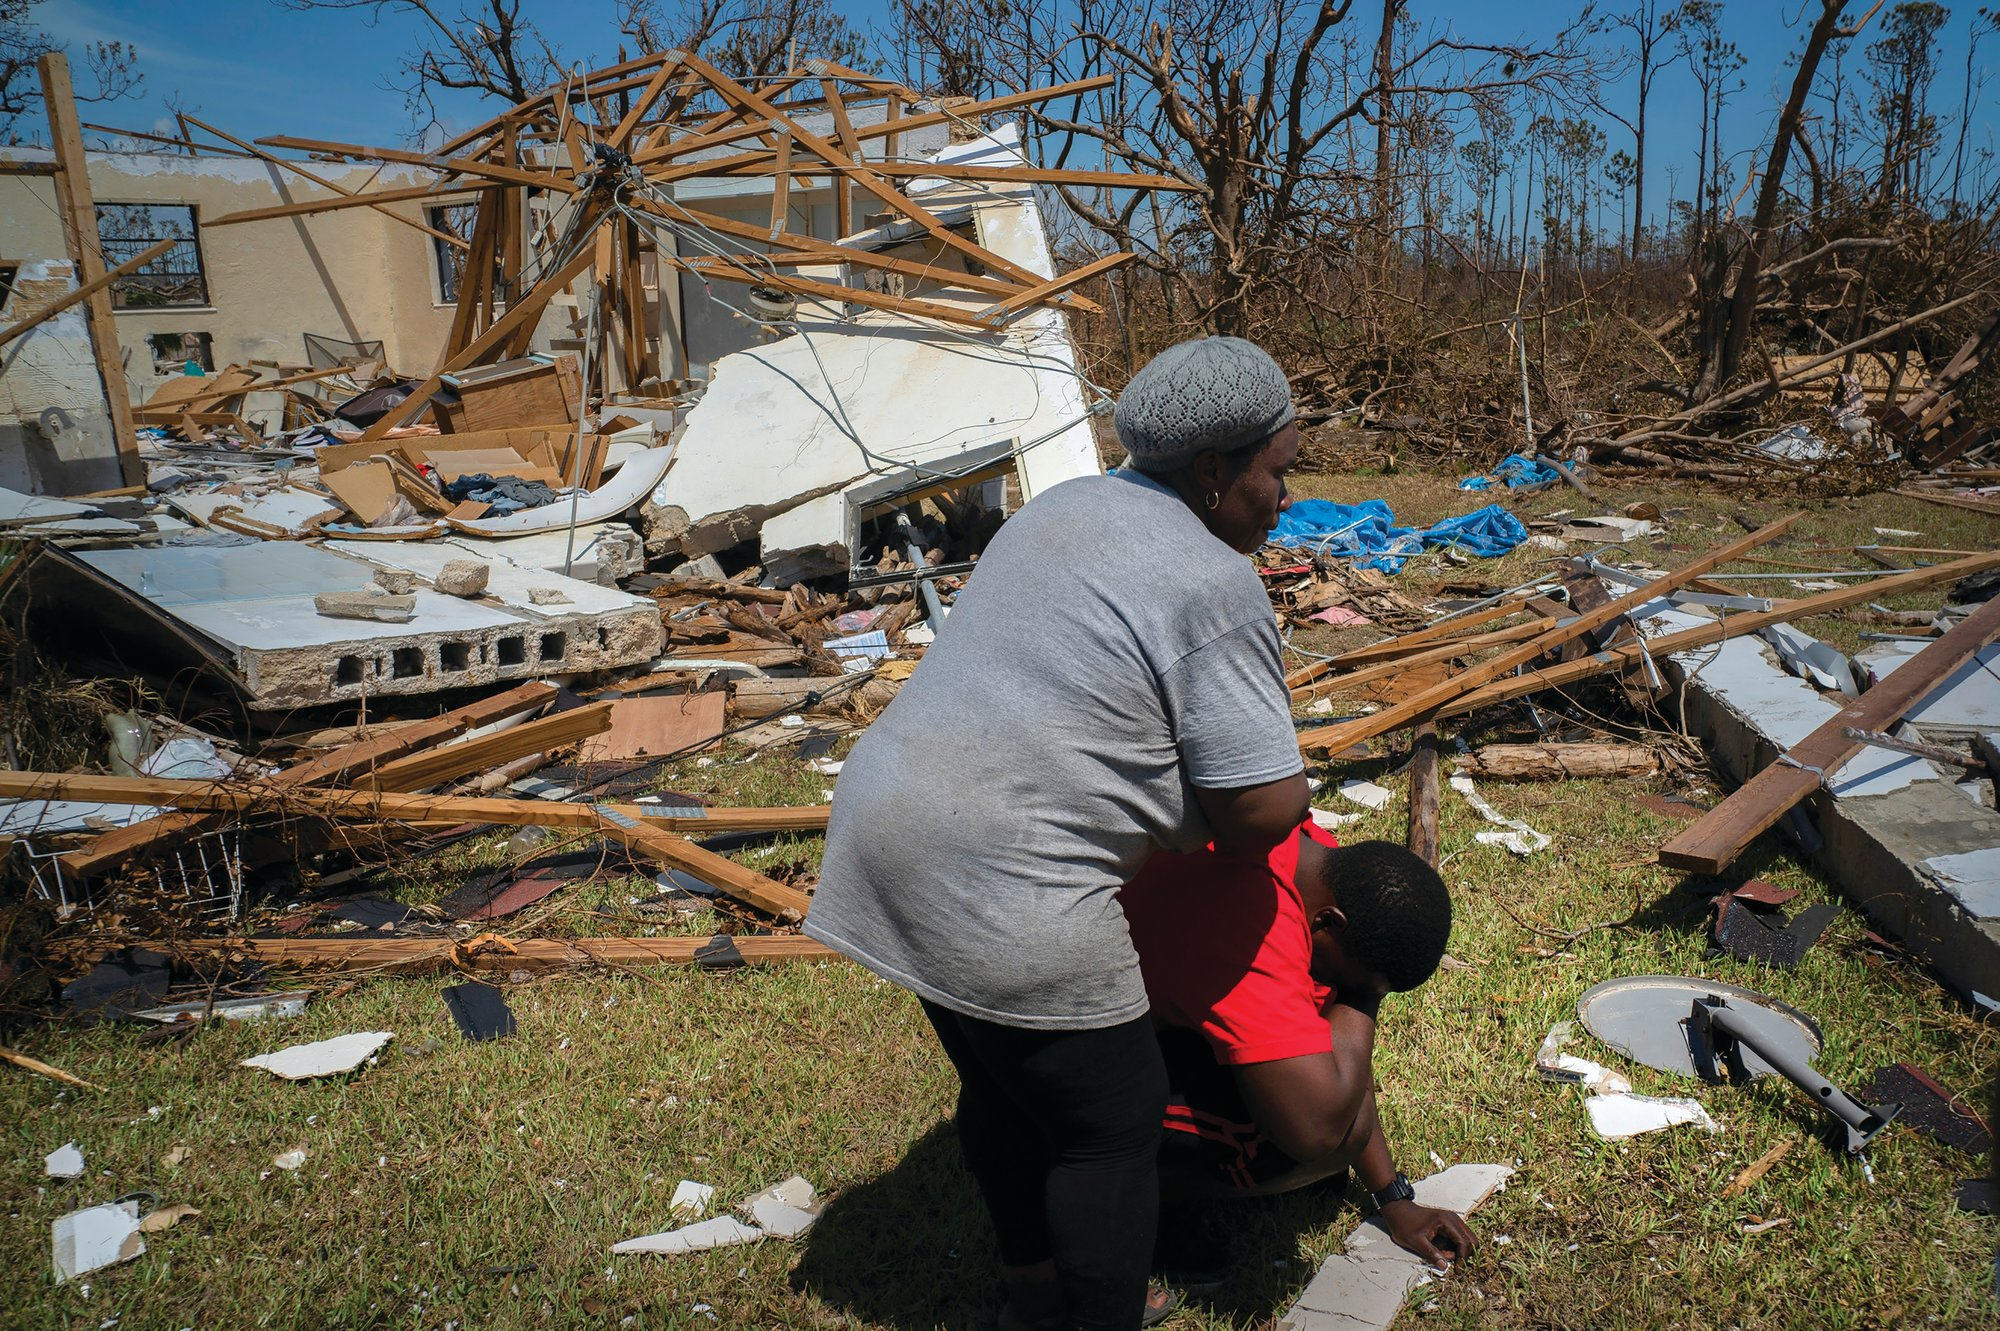 THE ASSOCIATED PRESSA woman comforts a man who cries after discovering his shattered house and not knowing anything about his 8 relatives who lived in the house, missing in the aftermath of Hurricane Dorian, in High Rock, Grand Bahama, Bahamas, on Sept. 5.